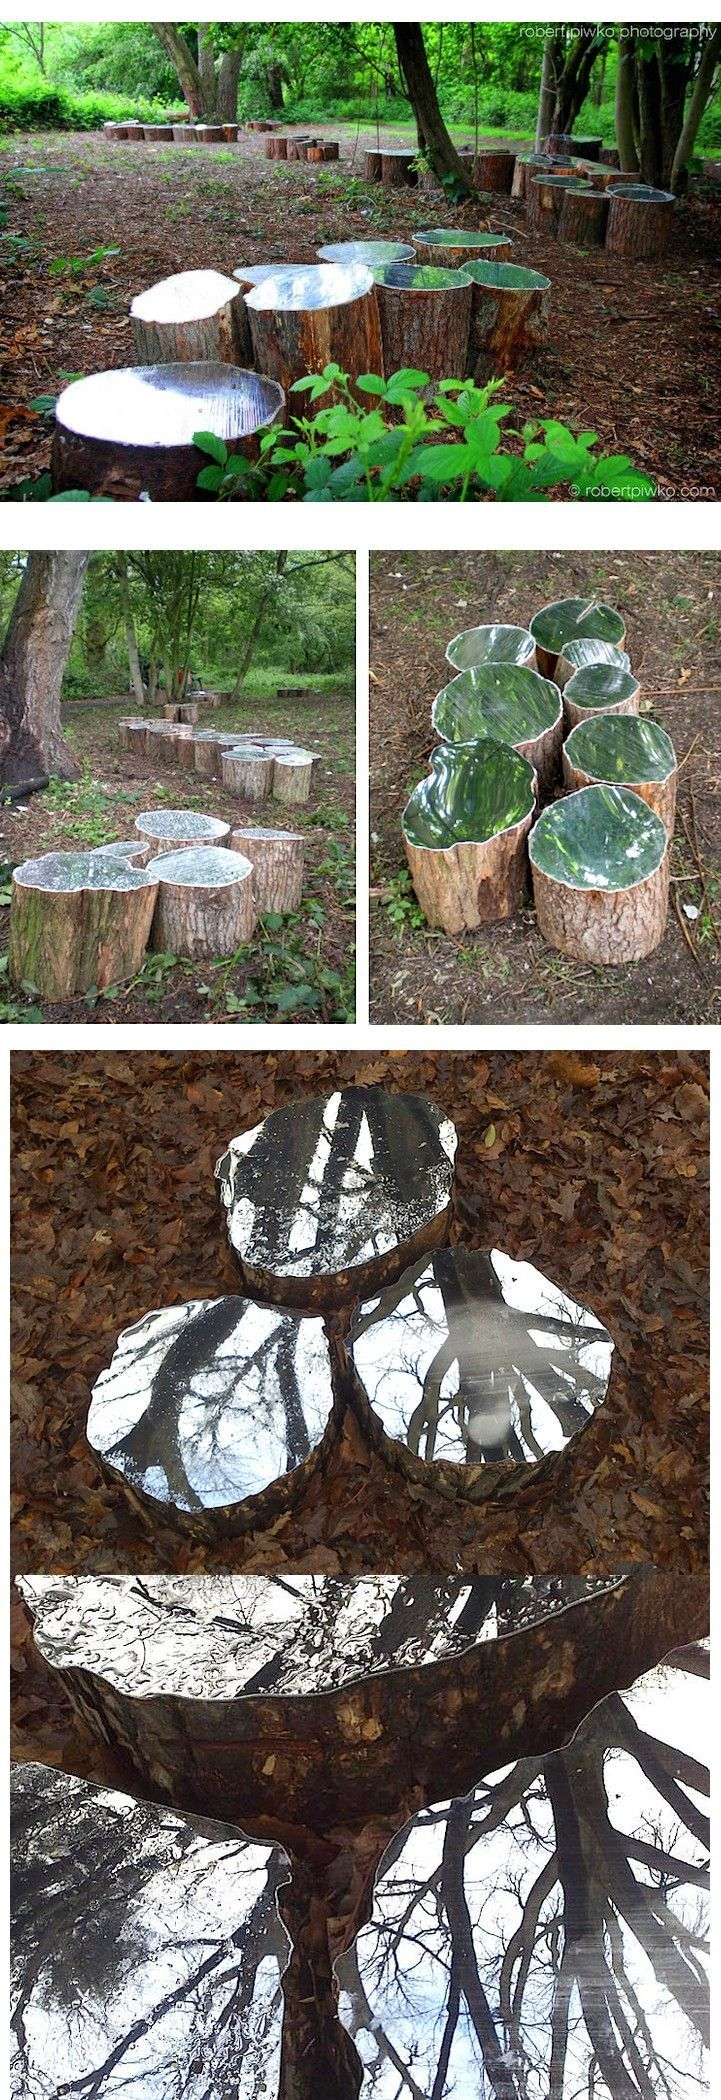 Artist Lee Borthwick installs mirrors in nature to offer a sense of peace and self-reflection.